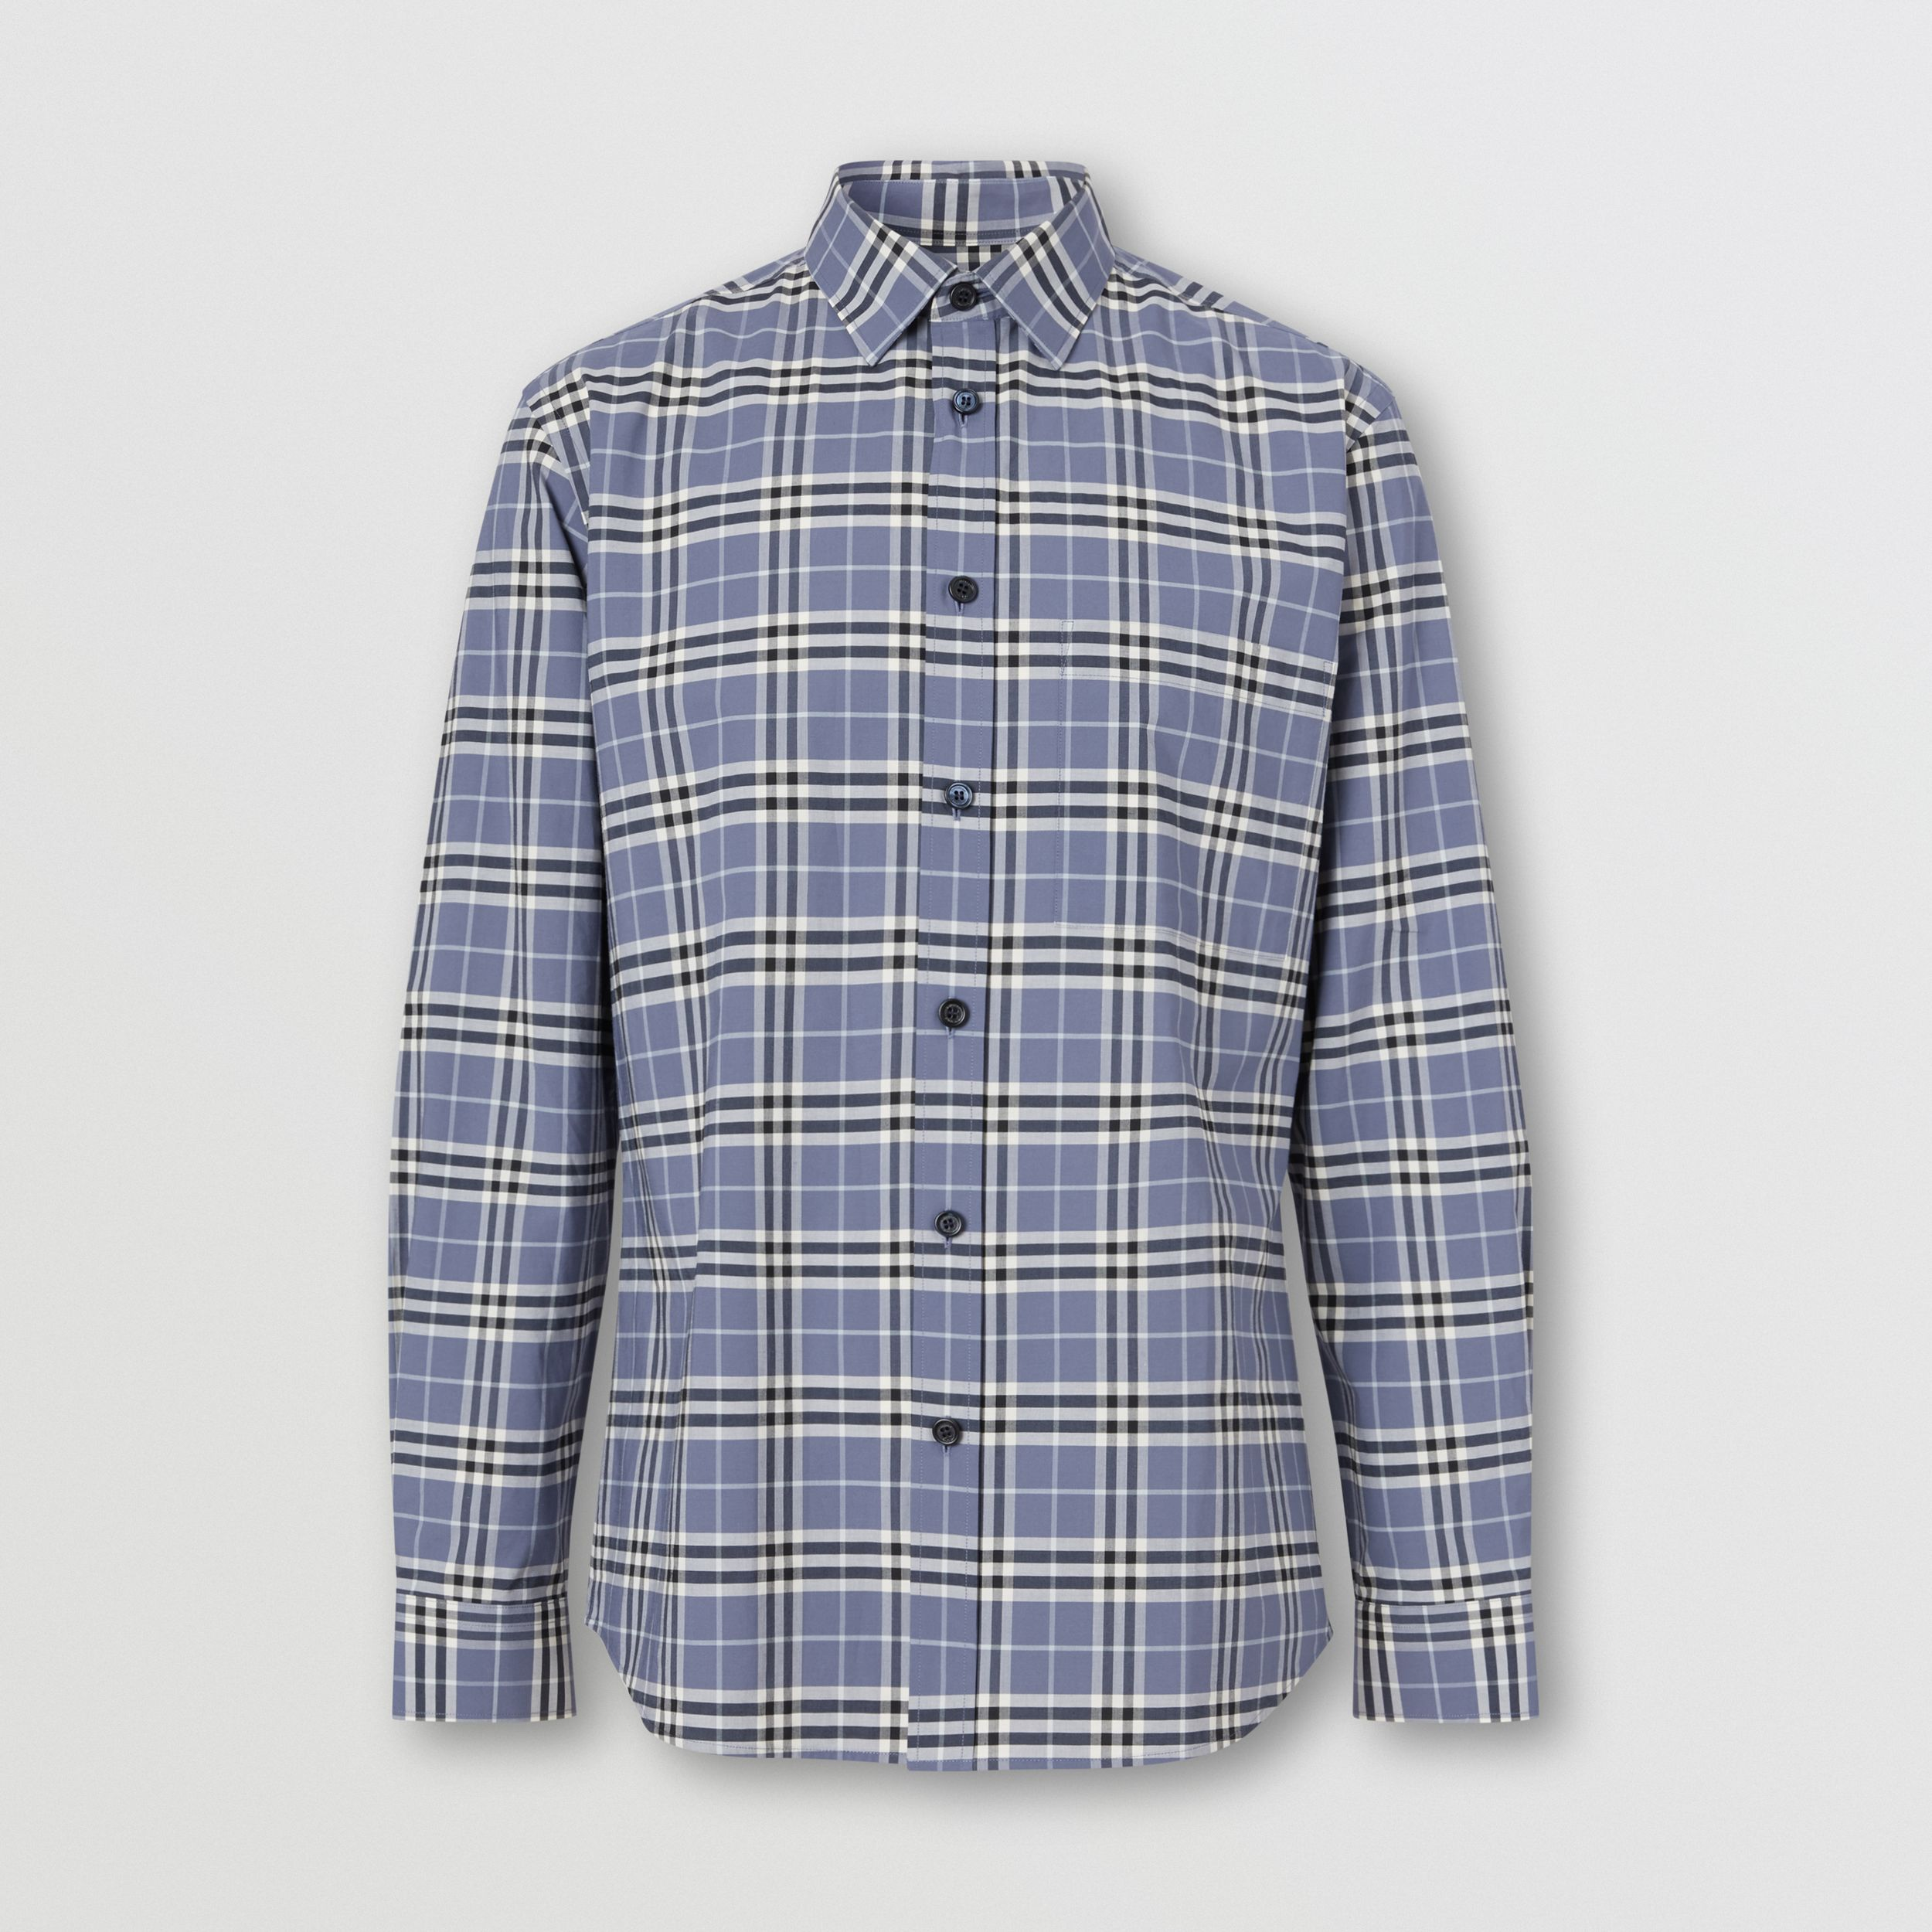 Small Scale Check Stretch Cotton Shirt in Pebble Blue - Men | Burberry - 4